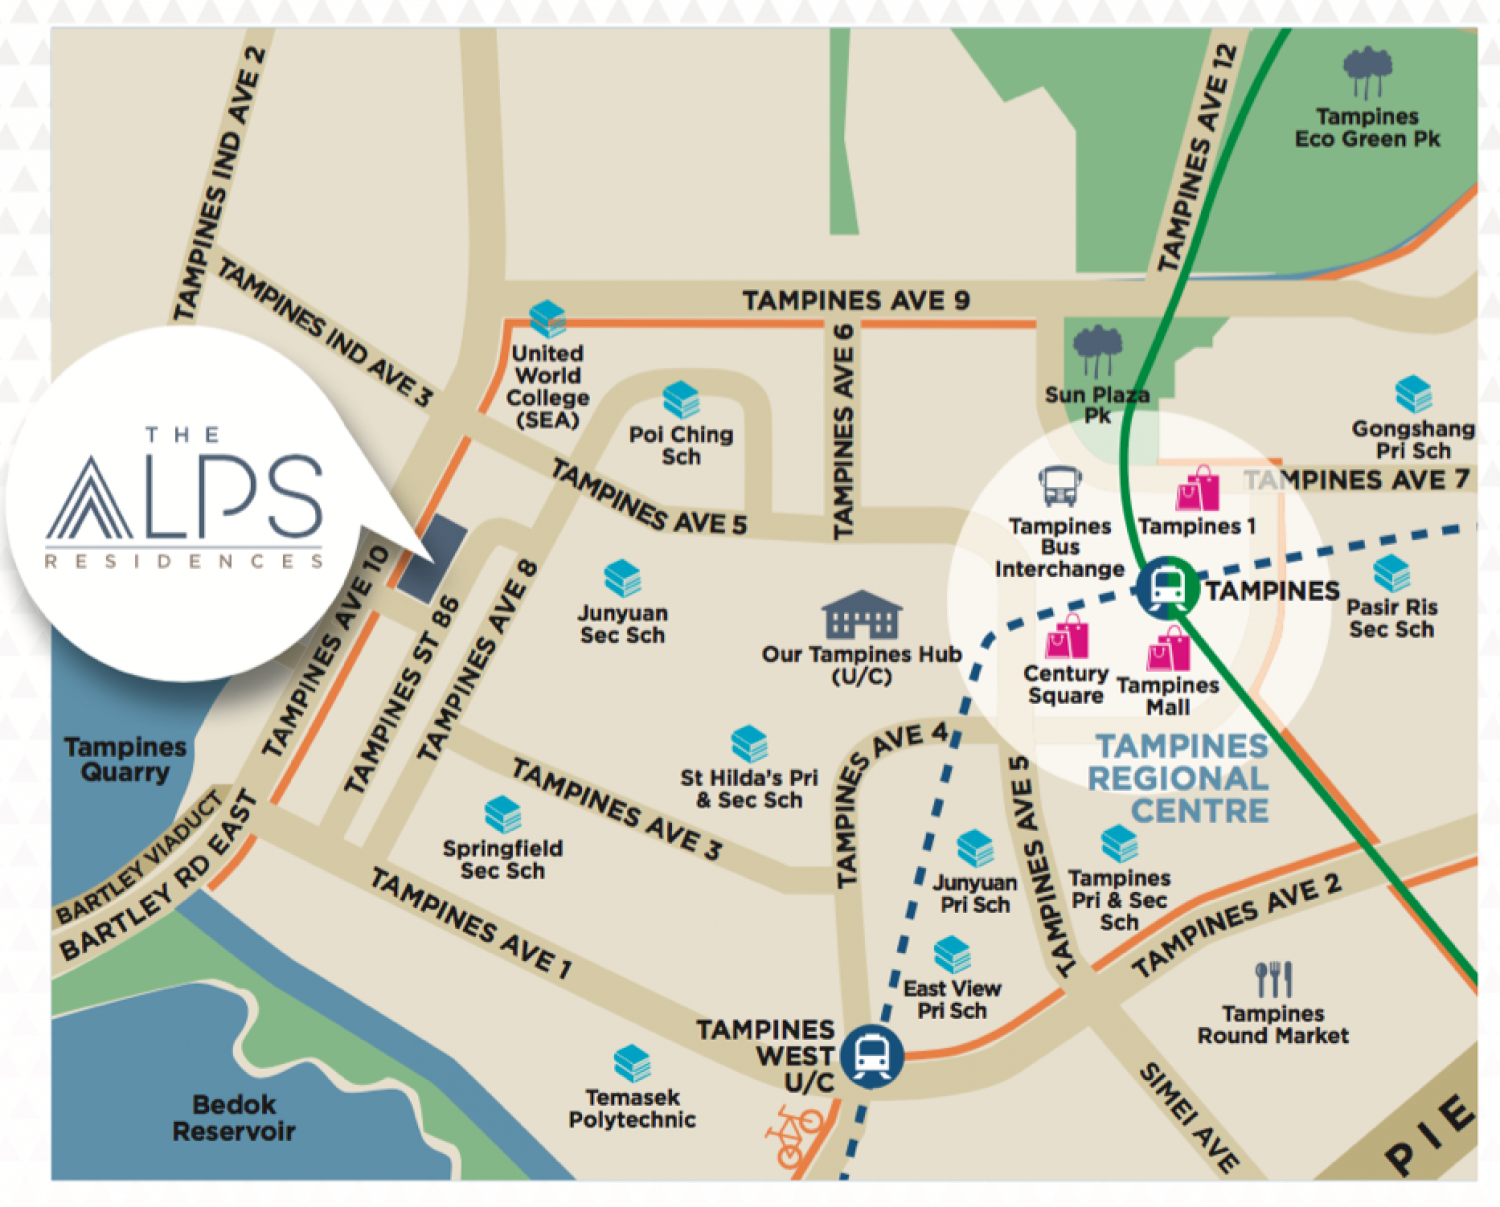 The Alps Residences Map